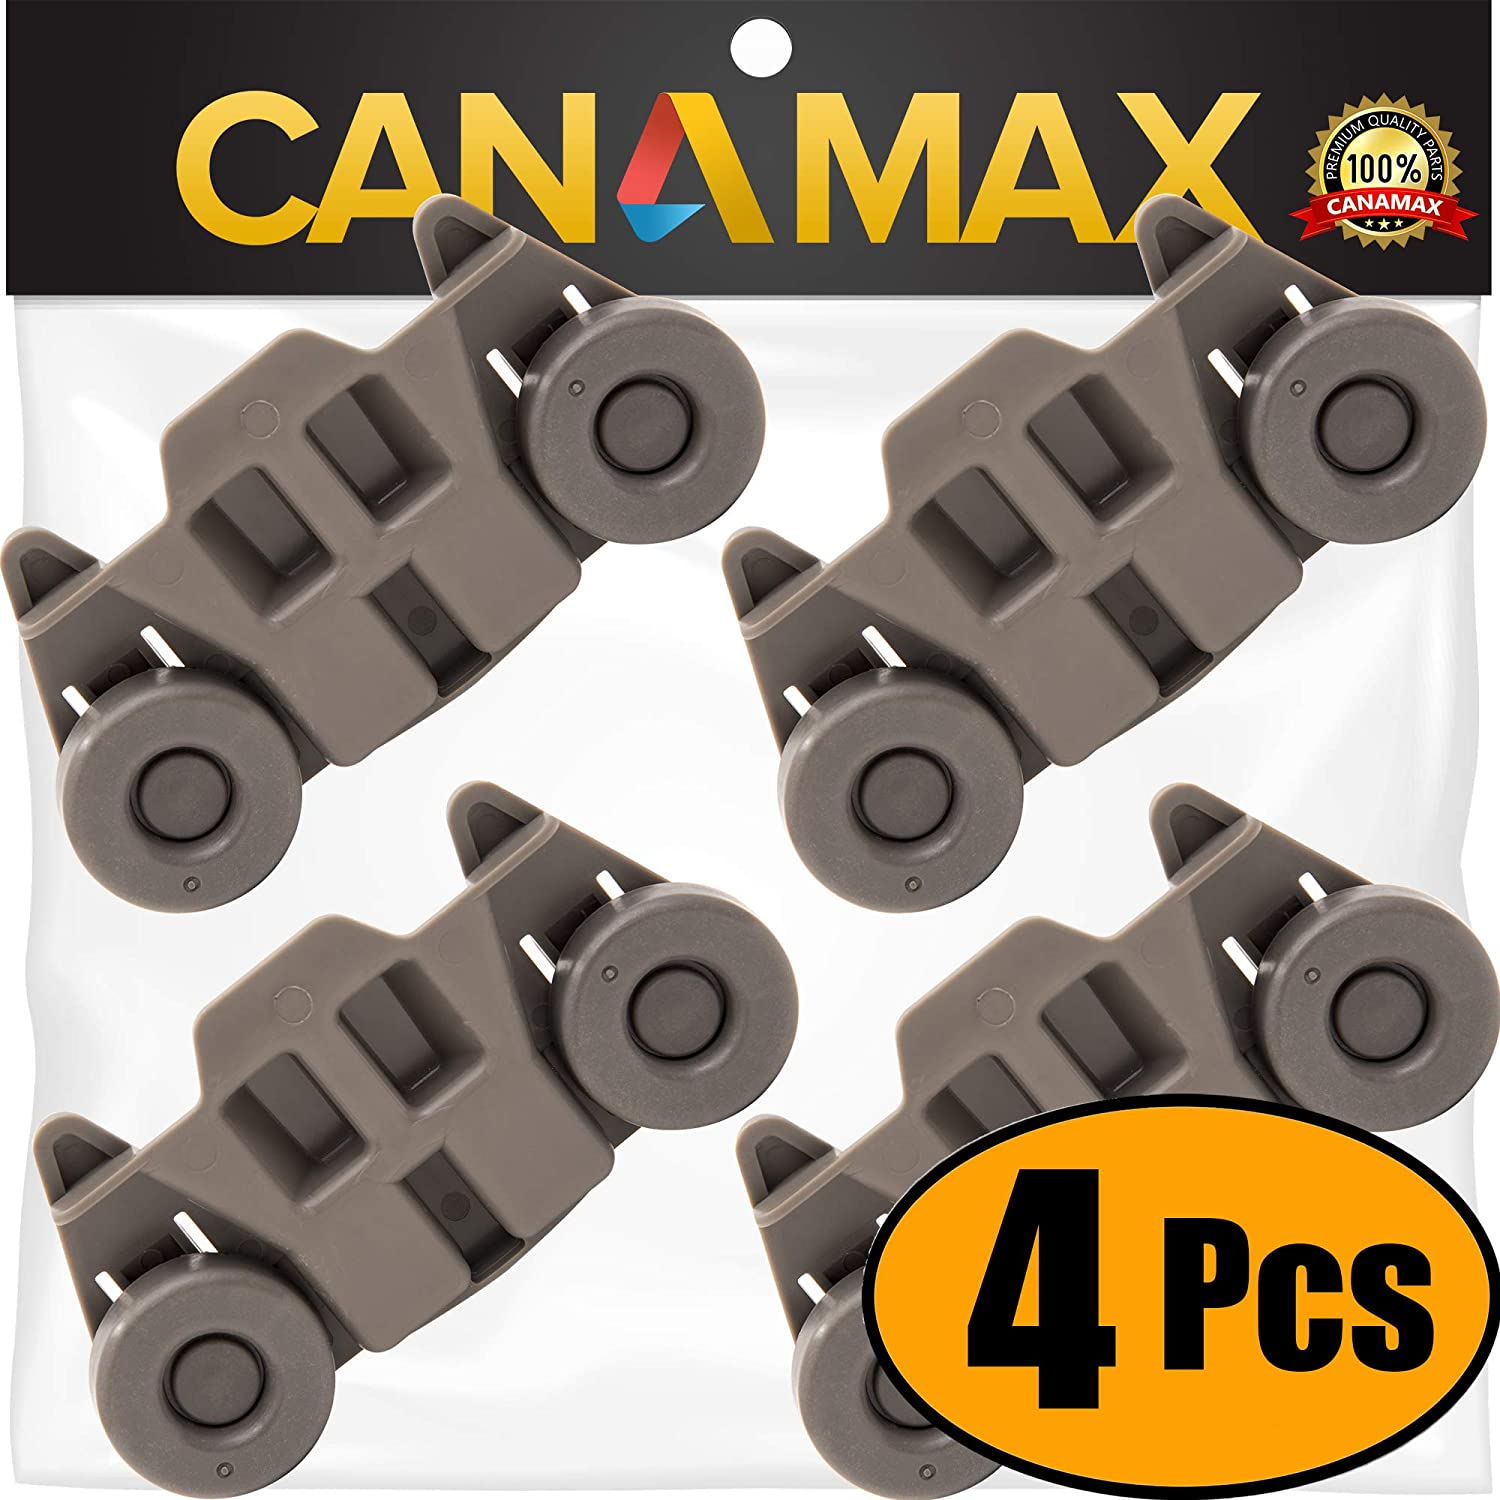 W10195416 Dishwasher Lower Rack Wheel Premium Replacement Part by Canamax - Compatible with Whirlpool & Kenmore Dish Racks - Replaces AP5983730 PS11722152 W10195416V - PACK OF 4